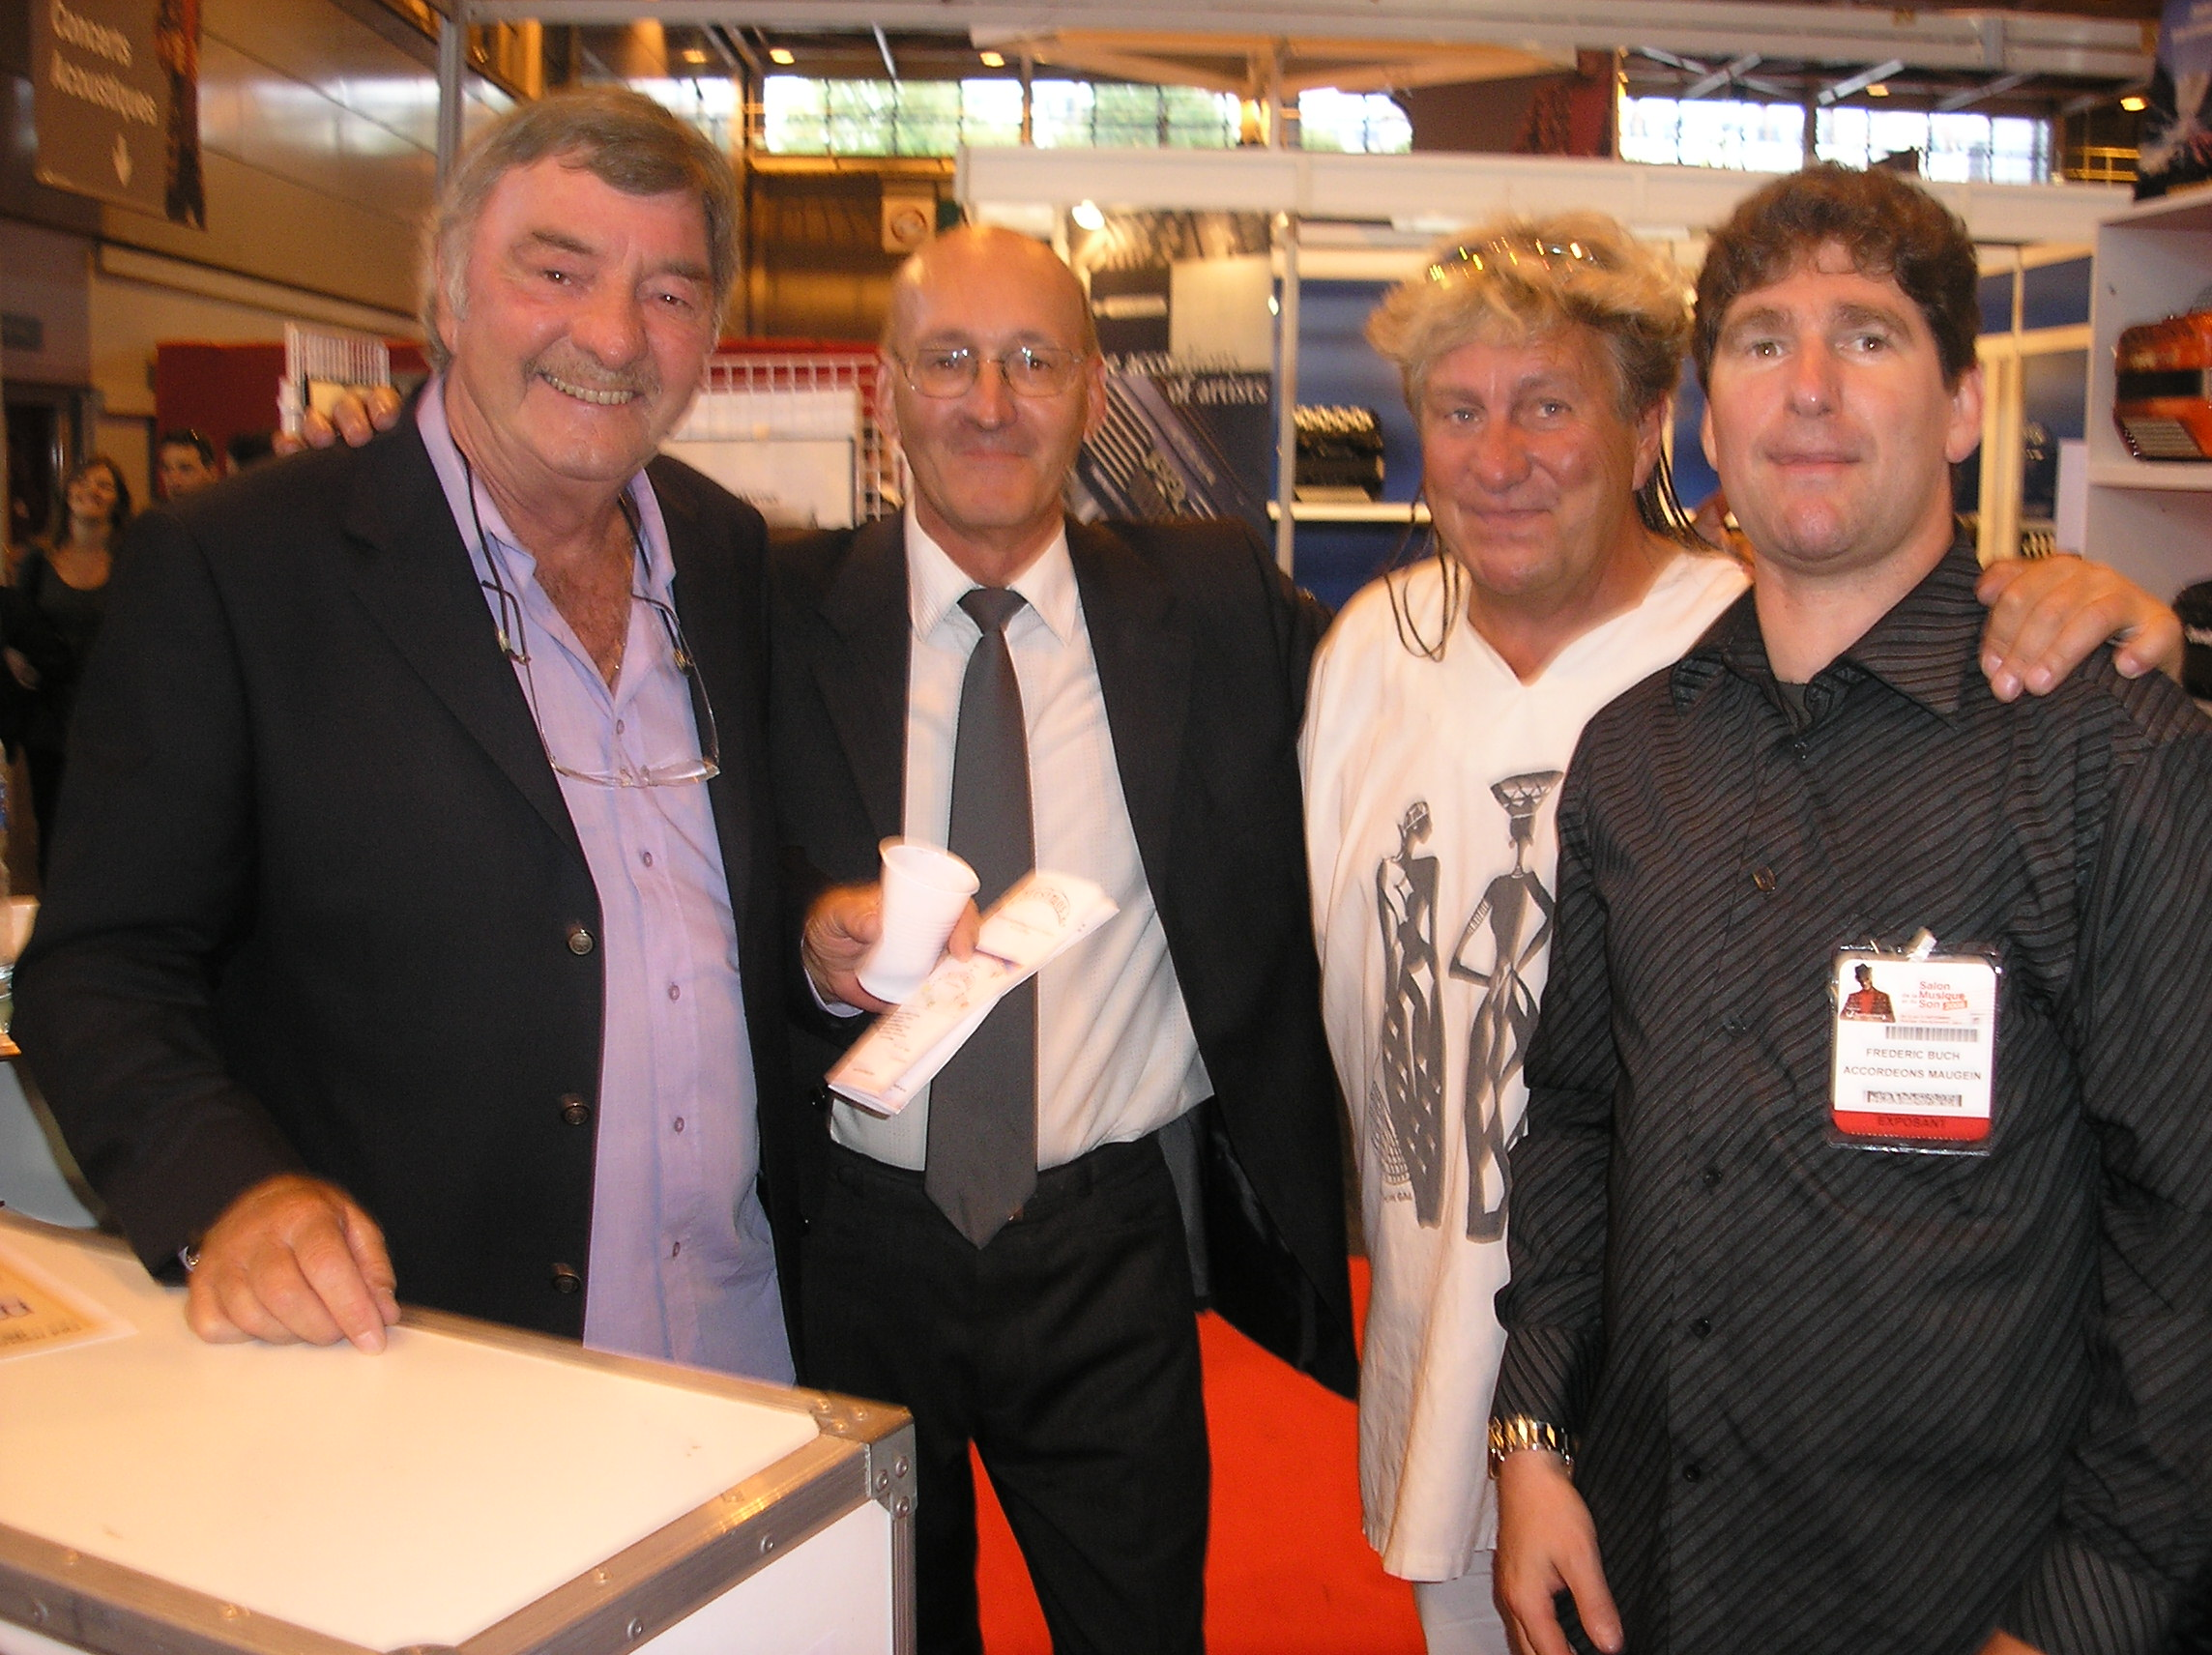 Salon musique paris 08 Louis Corchia  PK JL noton fred buch